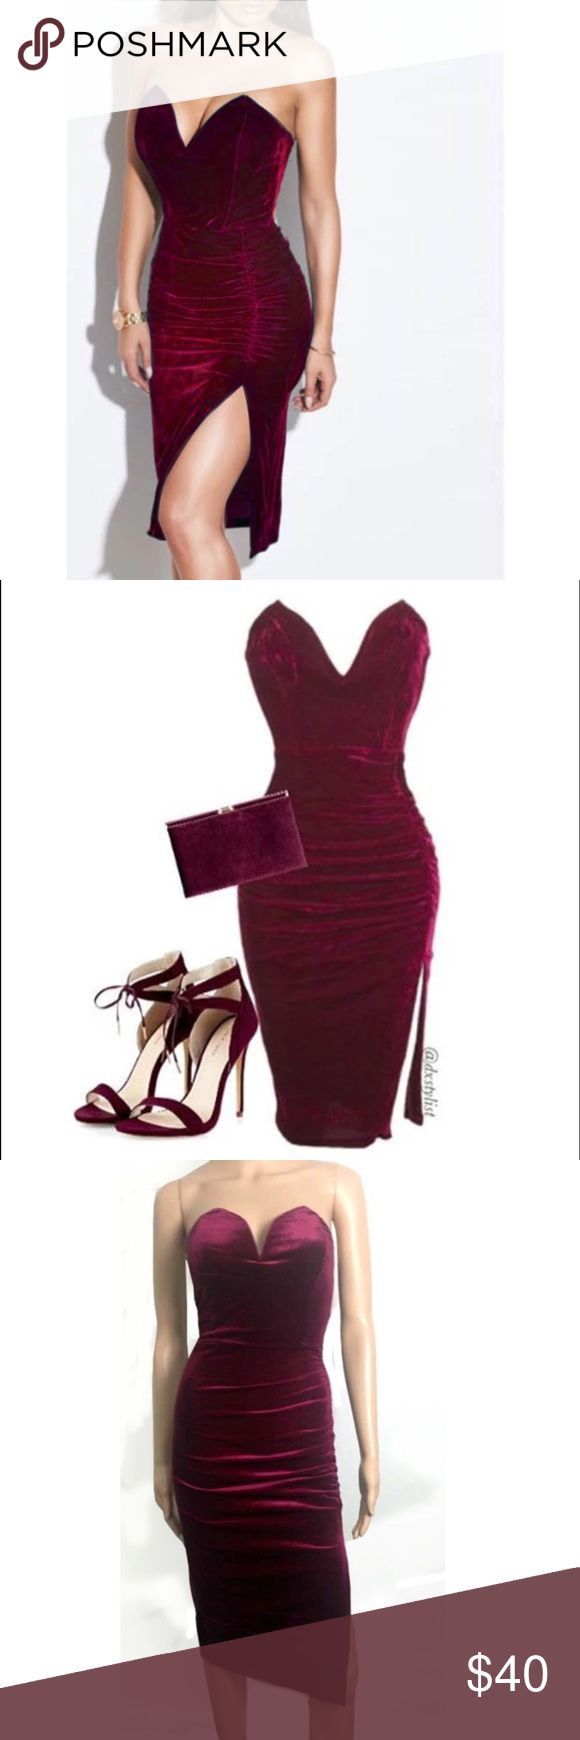 Burgundy Velvet Dress This dress is perfect for the holidays or for a date night! My absolute favorite                     Pre-Order - Item arrives in 5-15 business days - Price is firm unless bundled - NOT Missguided Missguided Dresses Midi